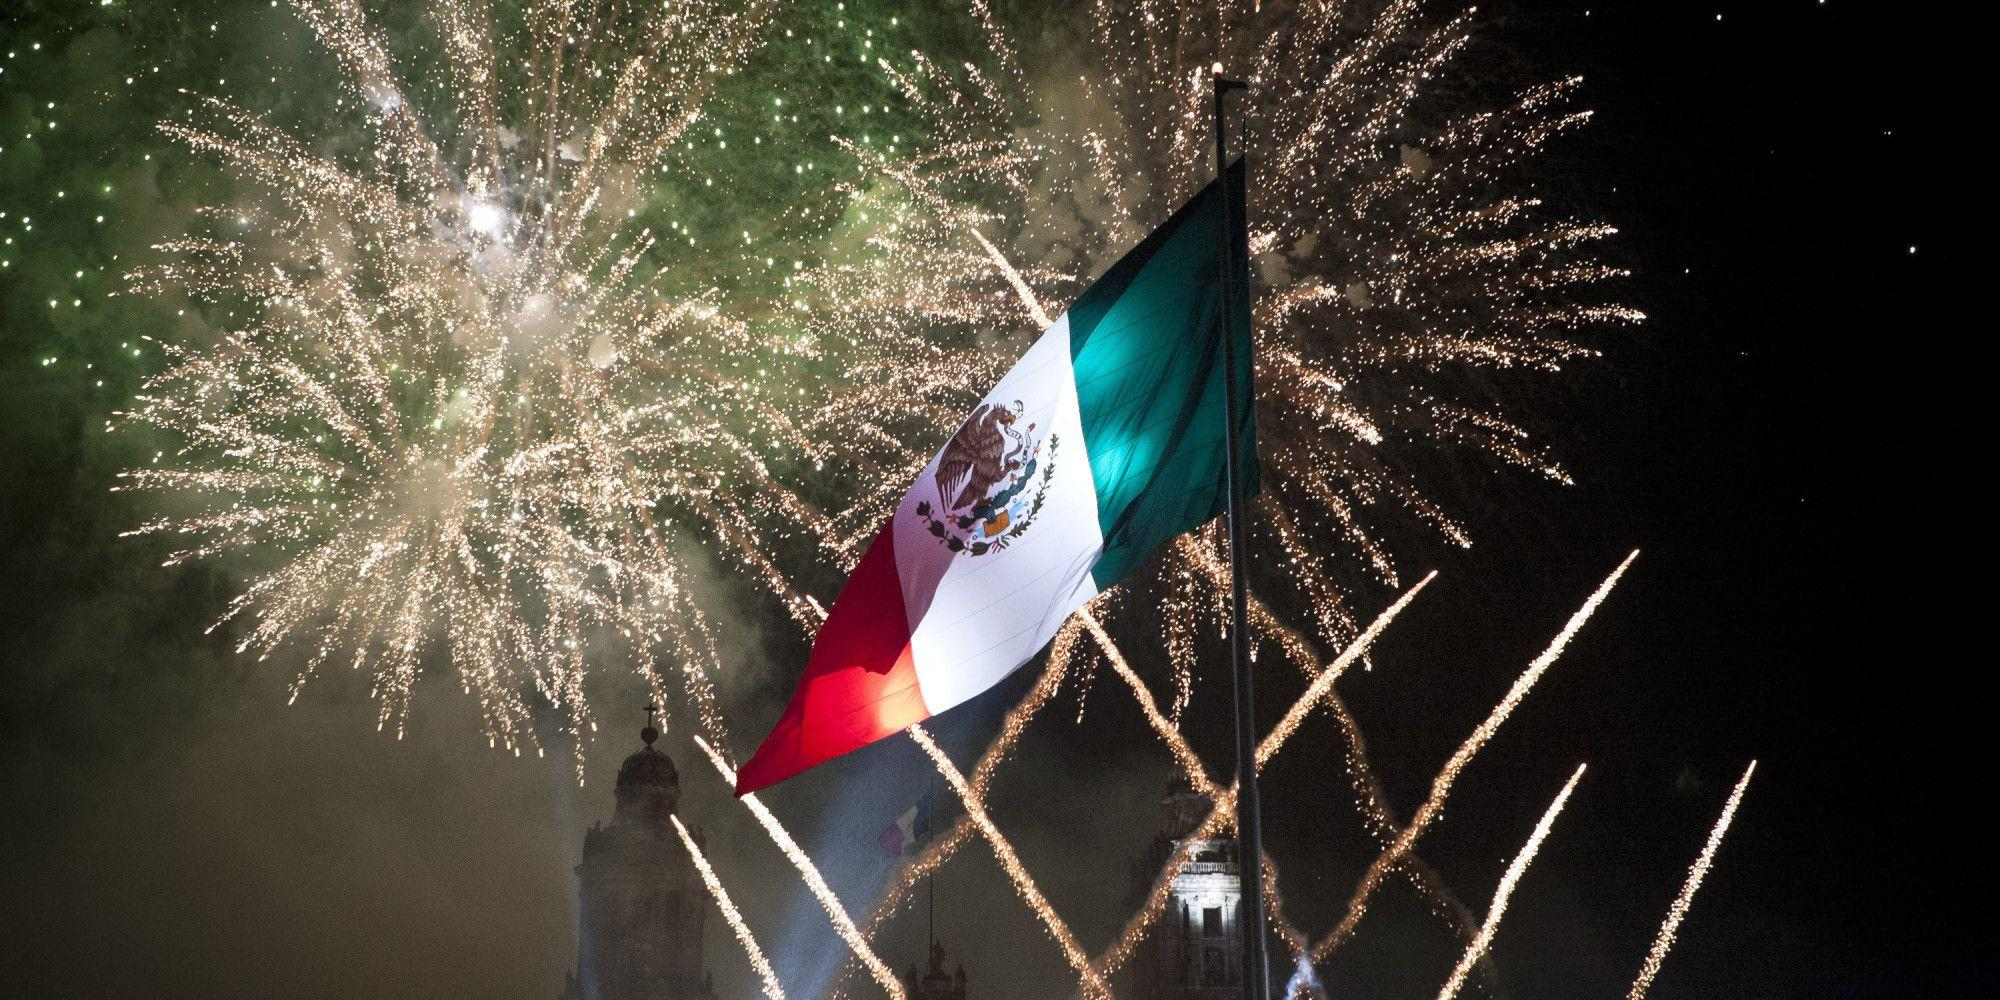 Celebrations of Mexico's Independence Day